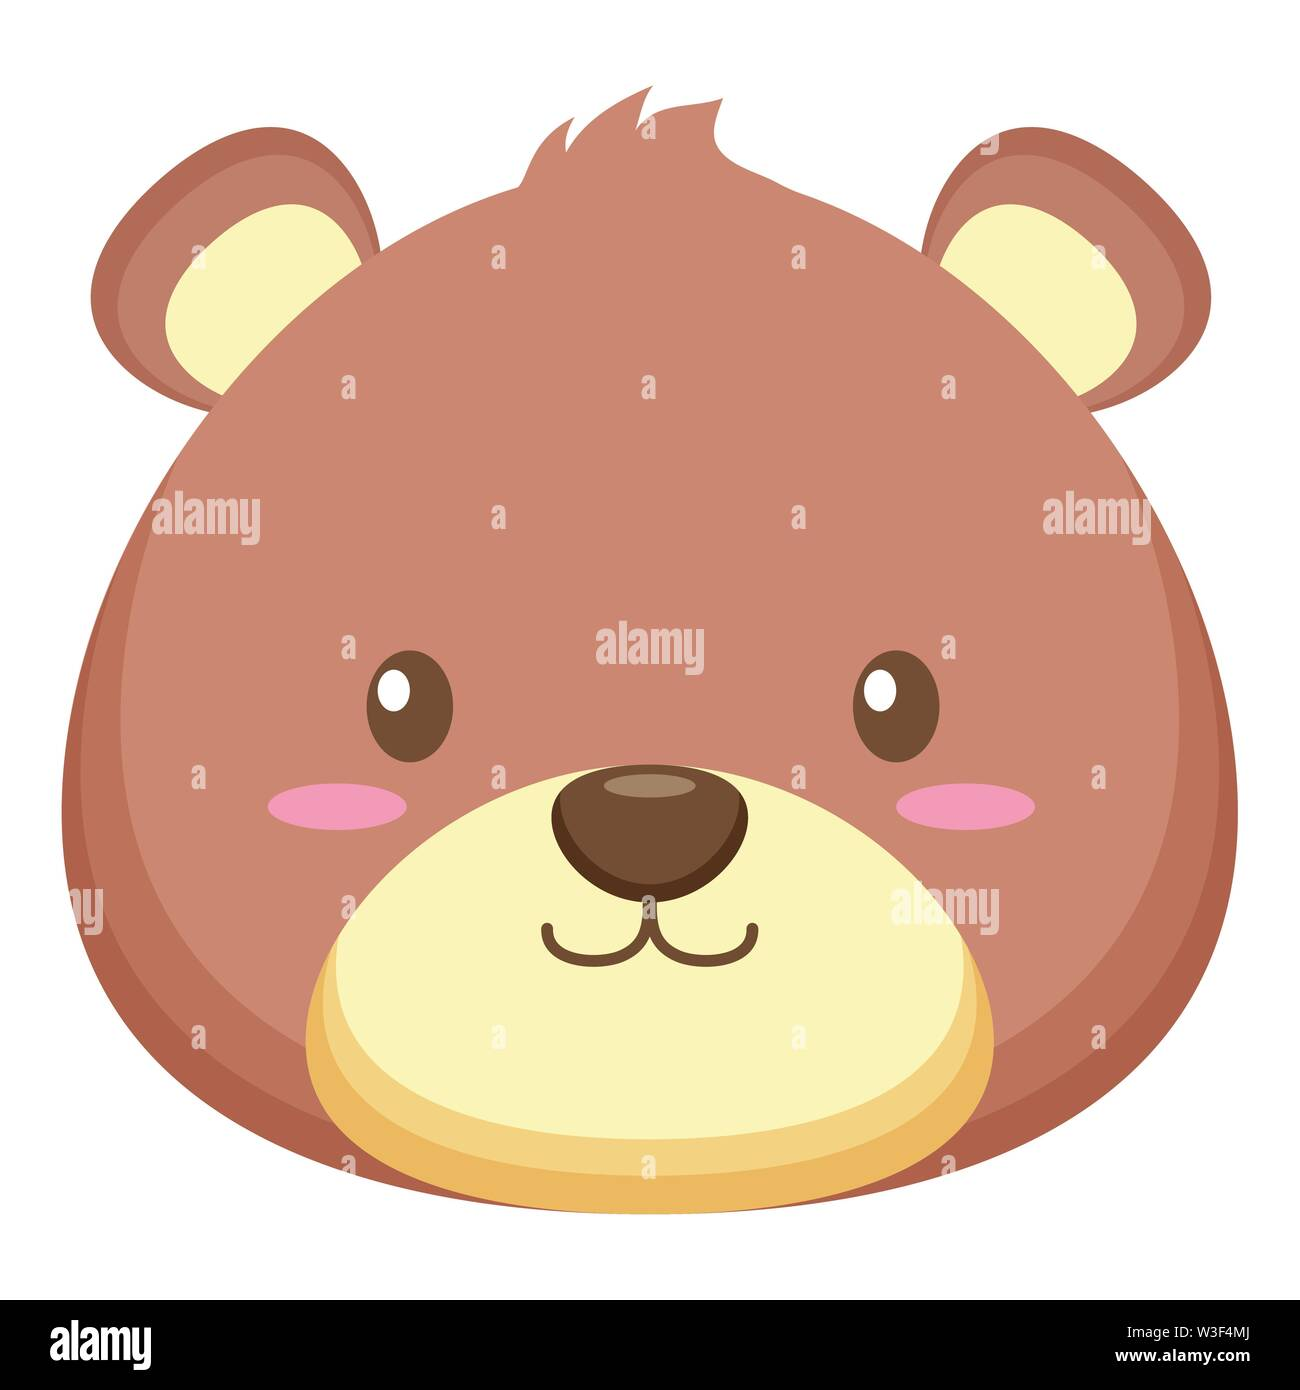 toy bear face on white background vector illustration - Stock Image